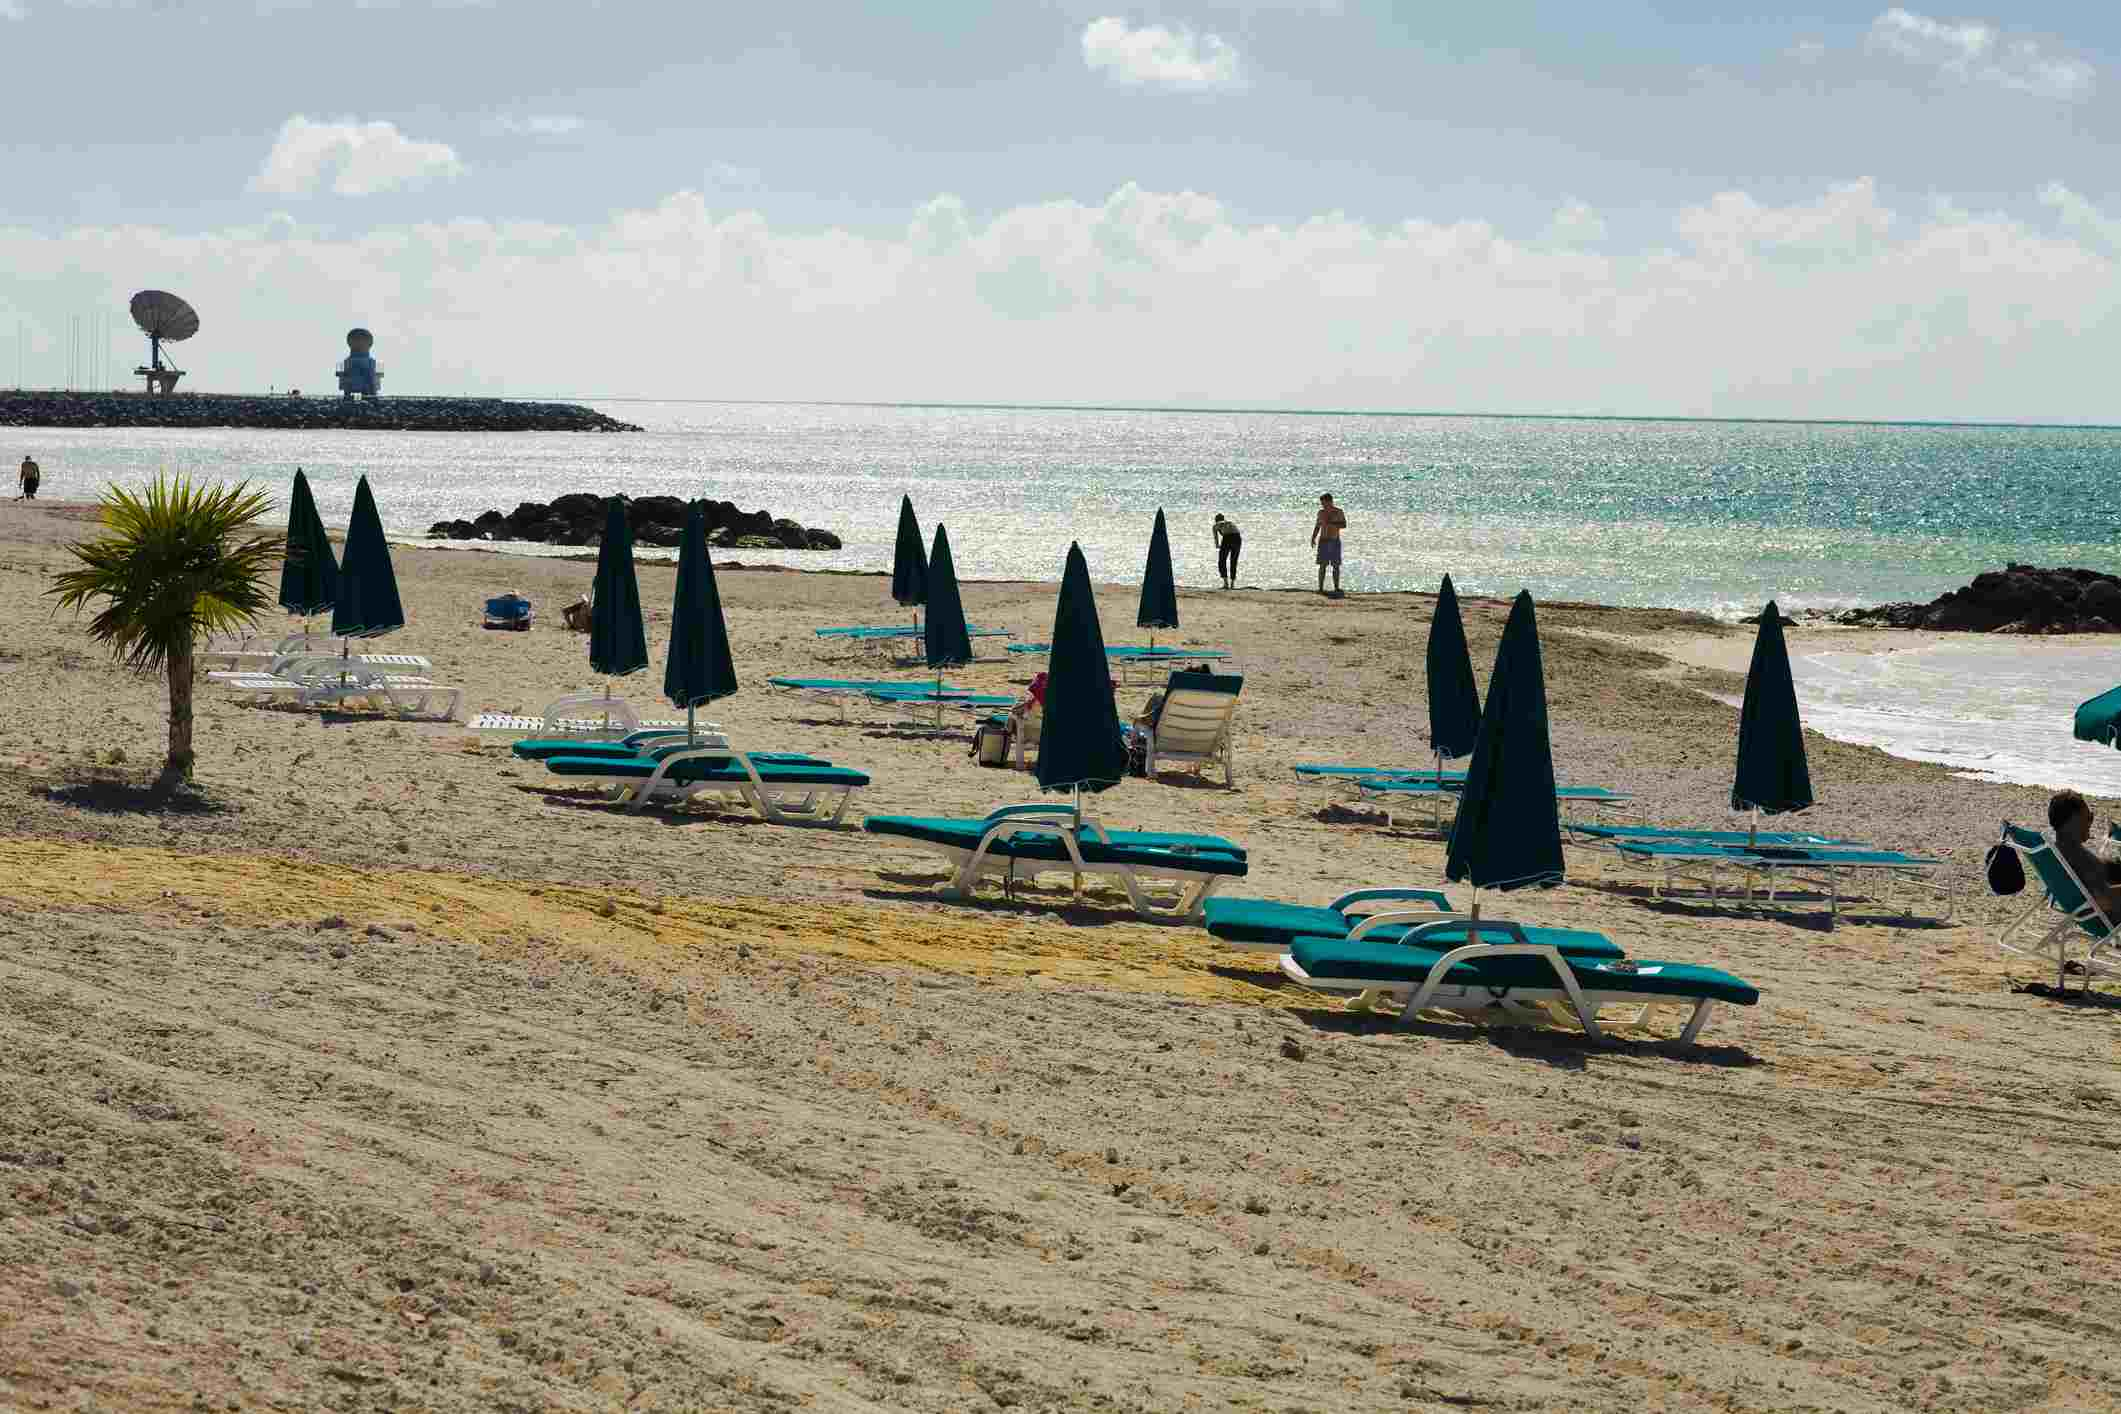 Lounge chairs on the beach, Fort Zachary Taylor State Park, Key West, Florida, USA